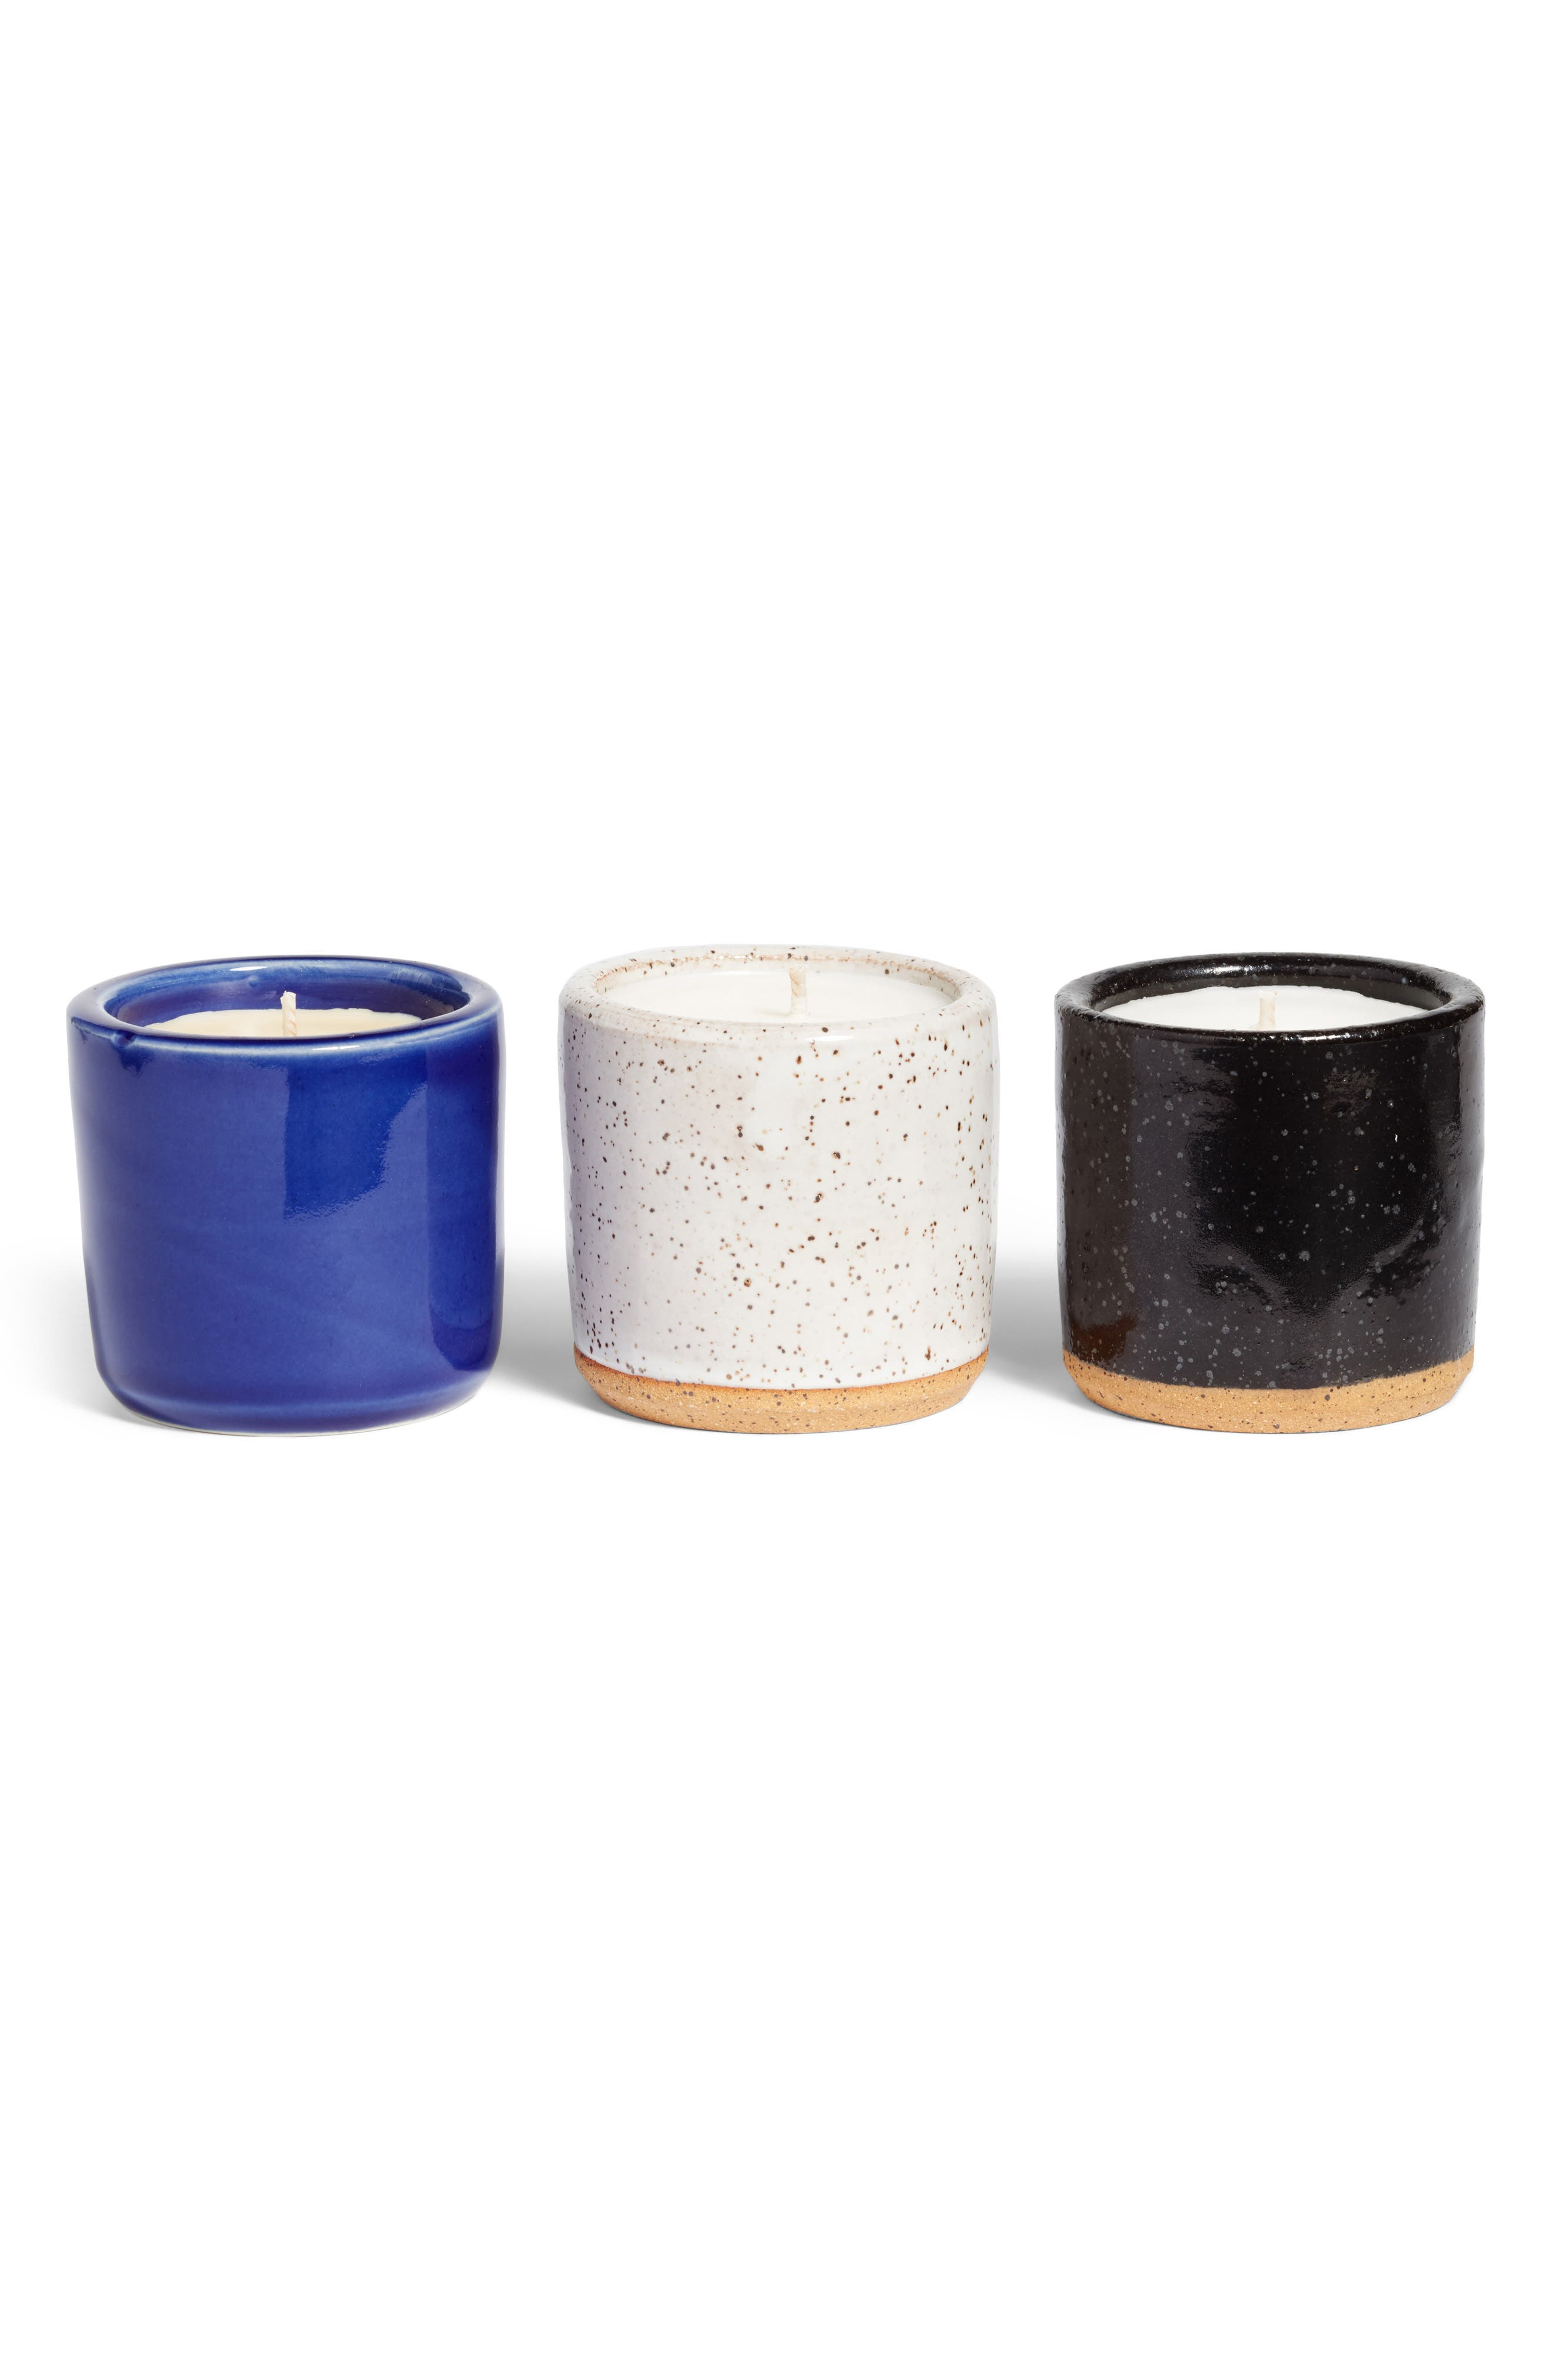 Set of 3 Ceramic Scented Candles,                             Main thumbnail 1, color,